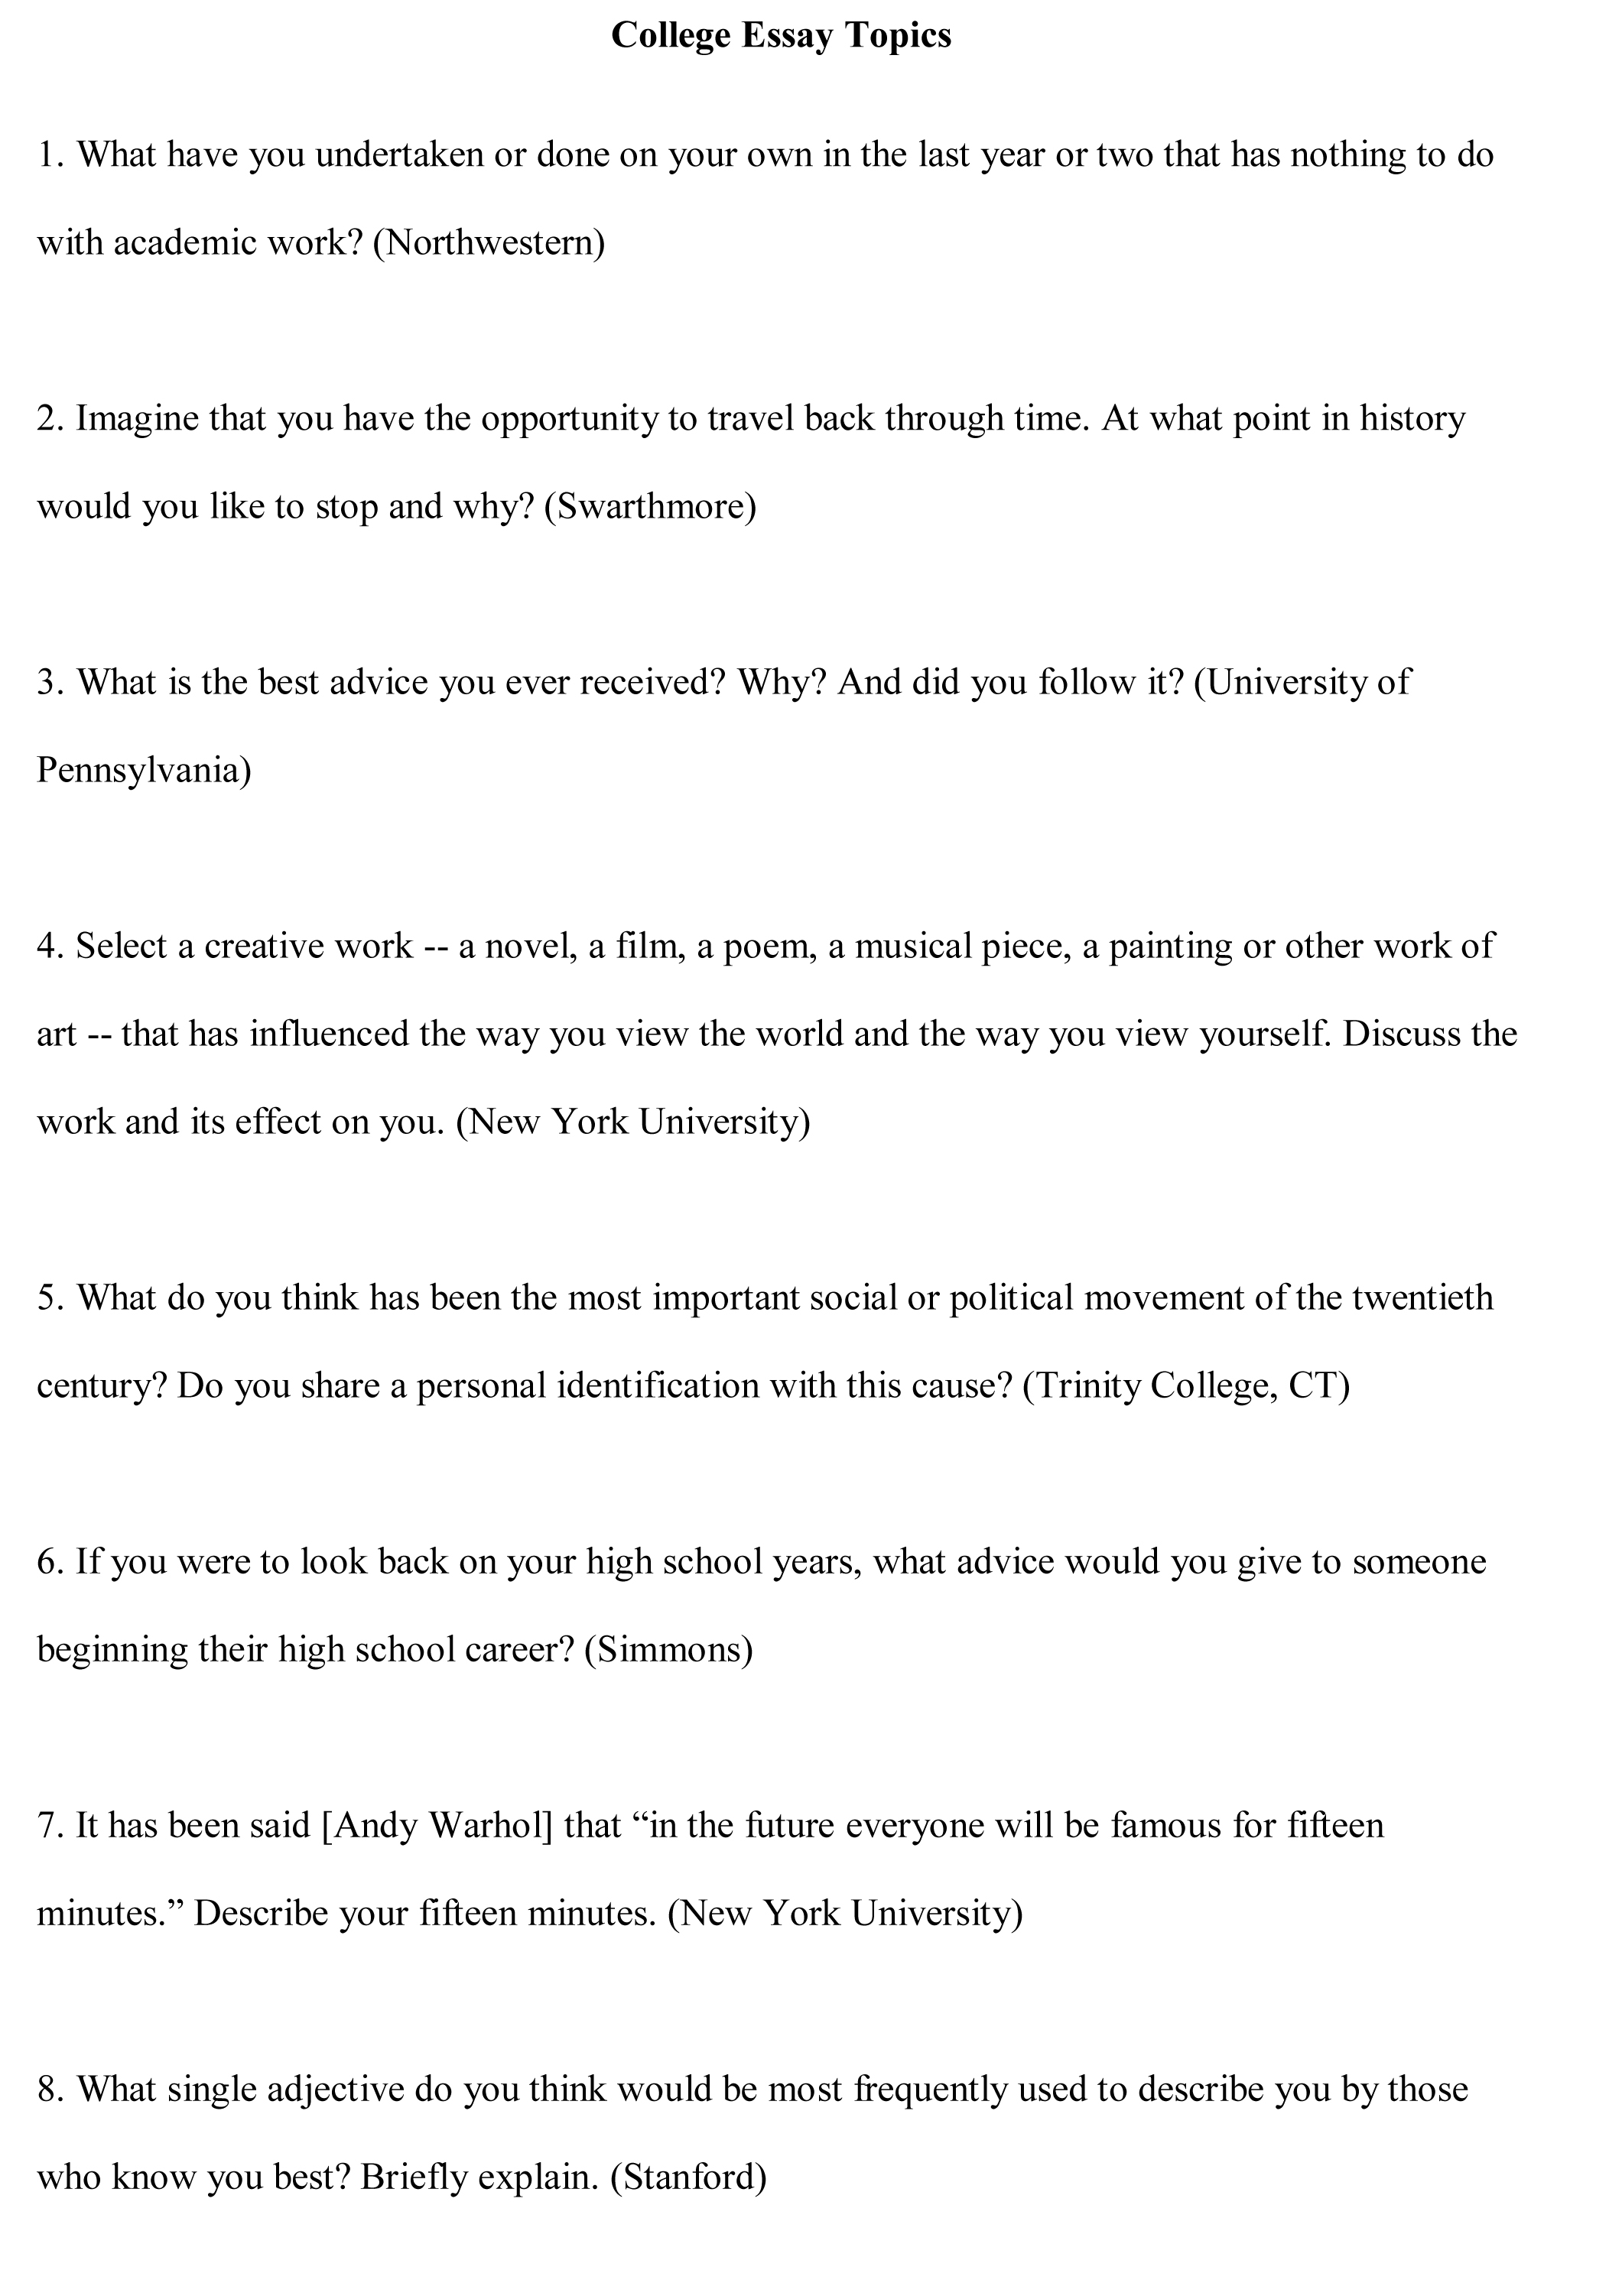 008 Essay Example College Topics Free Sample1 How To Excellent Essays Write An Expository For 4th Grade Make Longer With Words Start Introduction Full